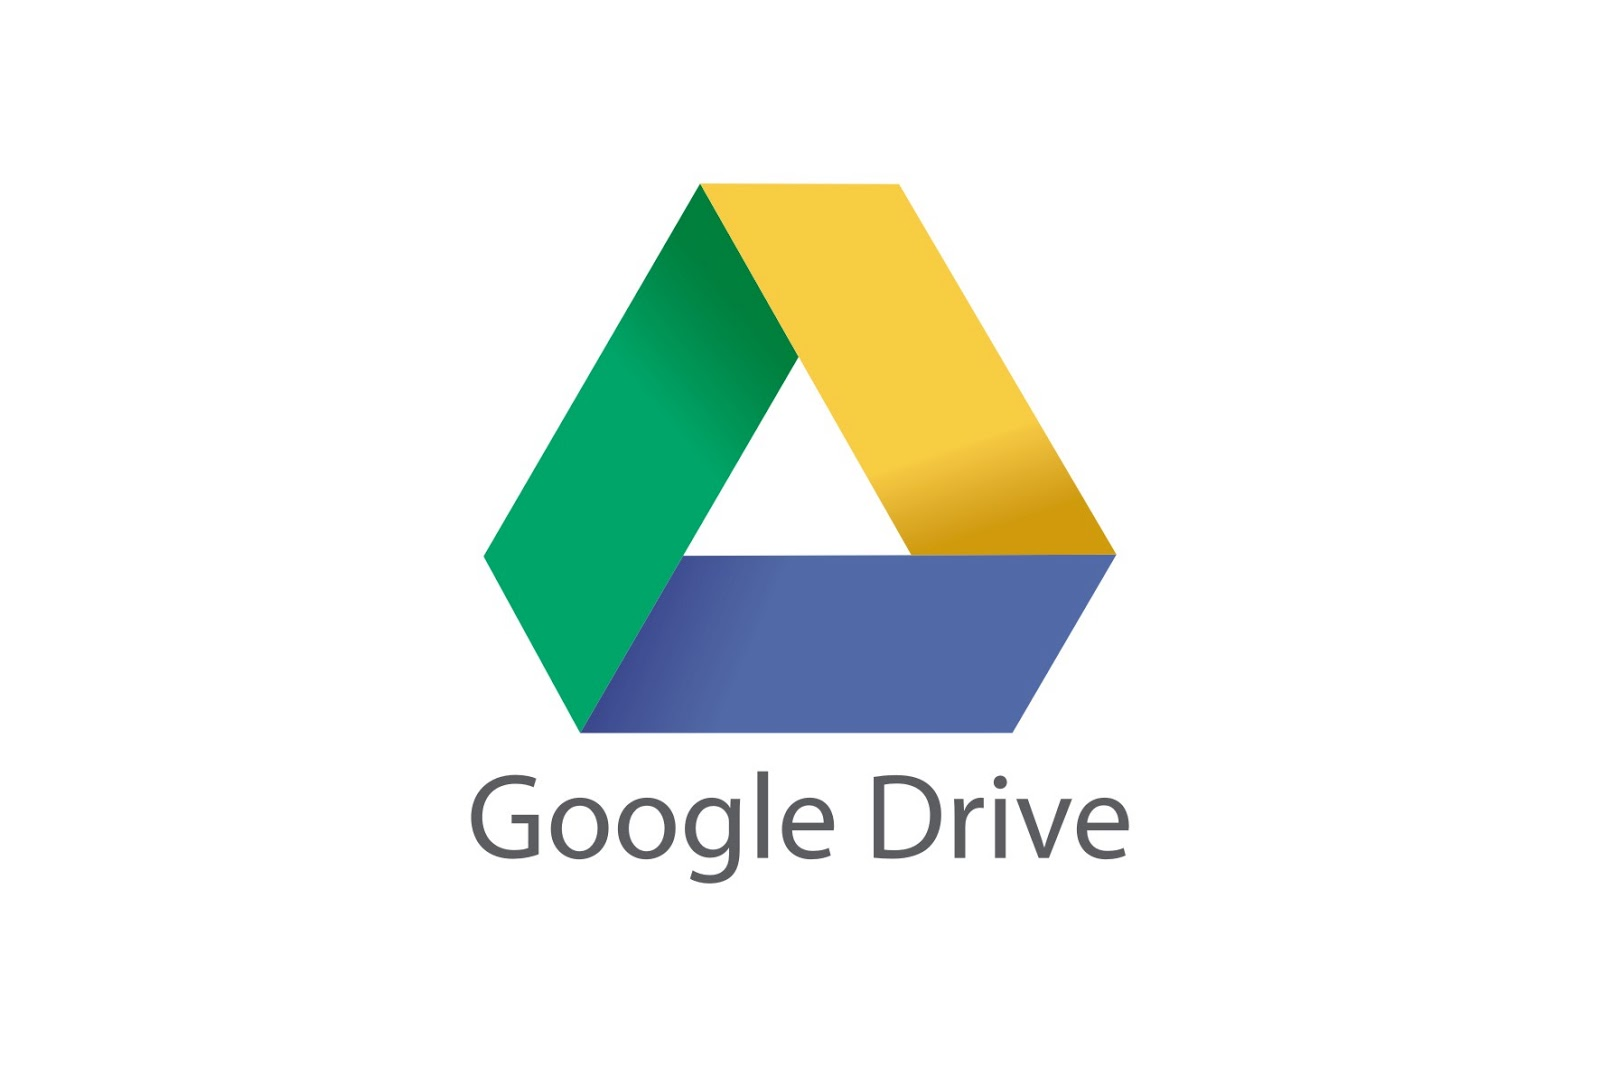 Triangle with a green side, a yellow side, and a blue side and the words Google Drive below it